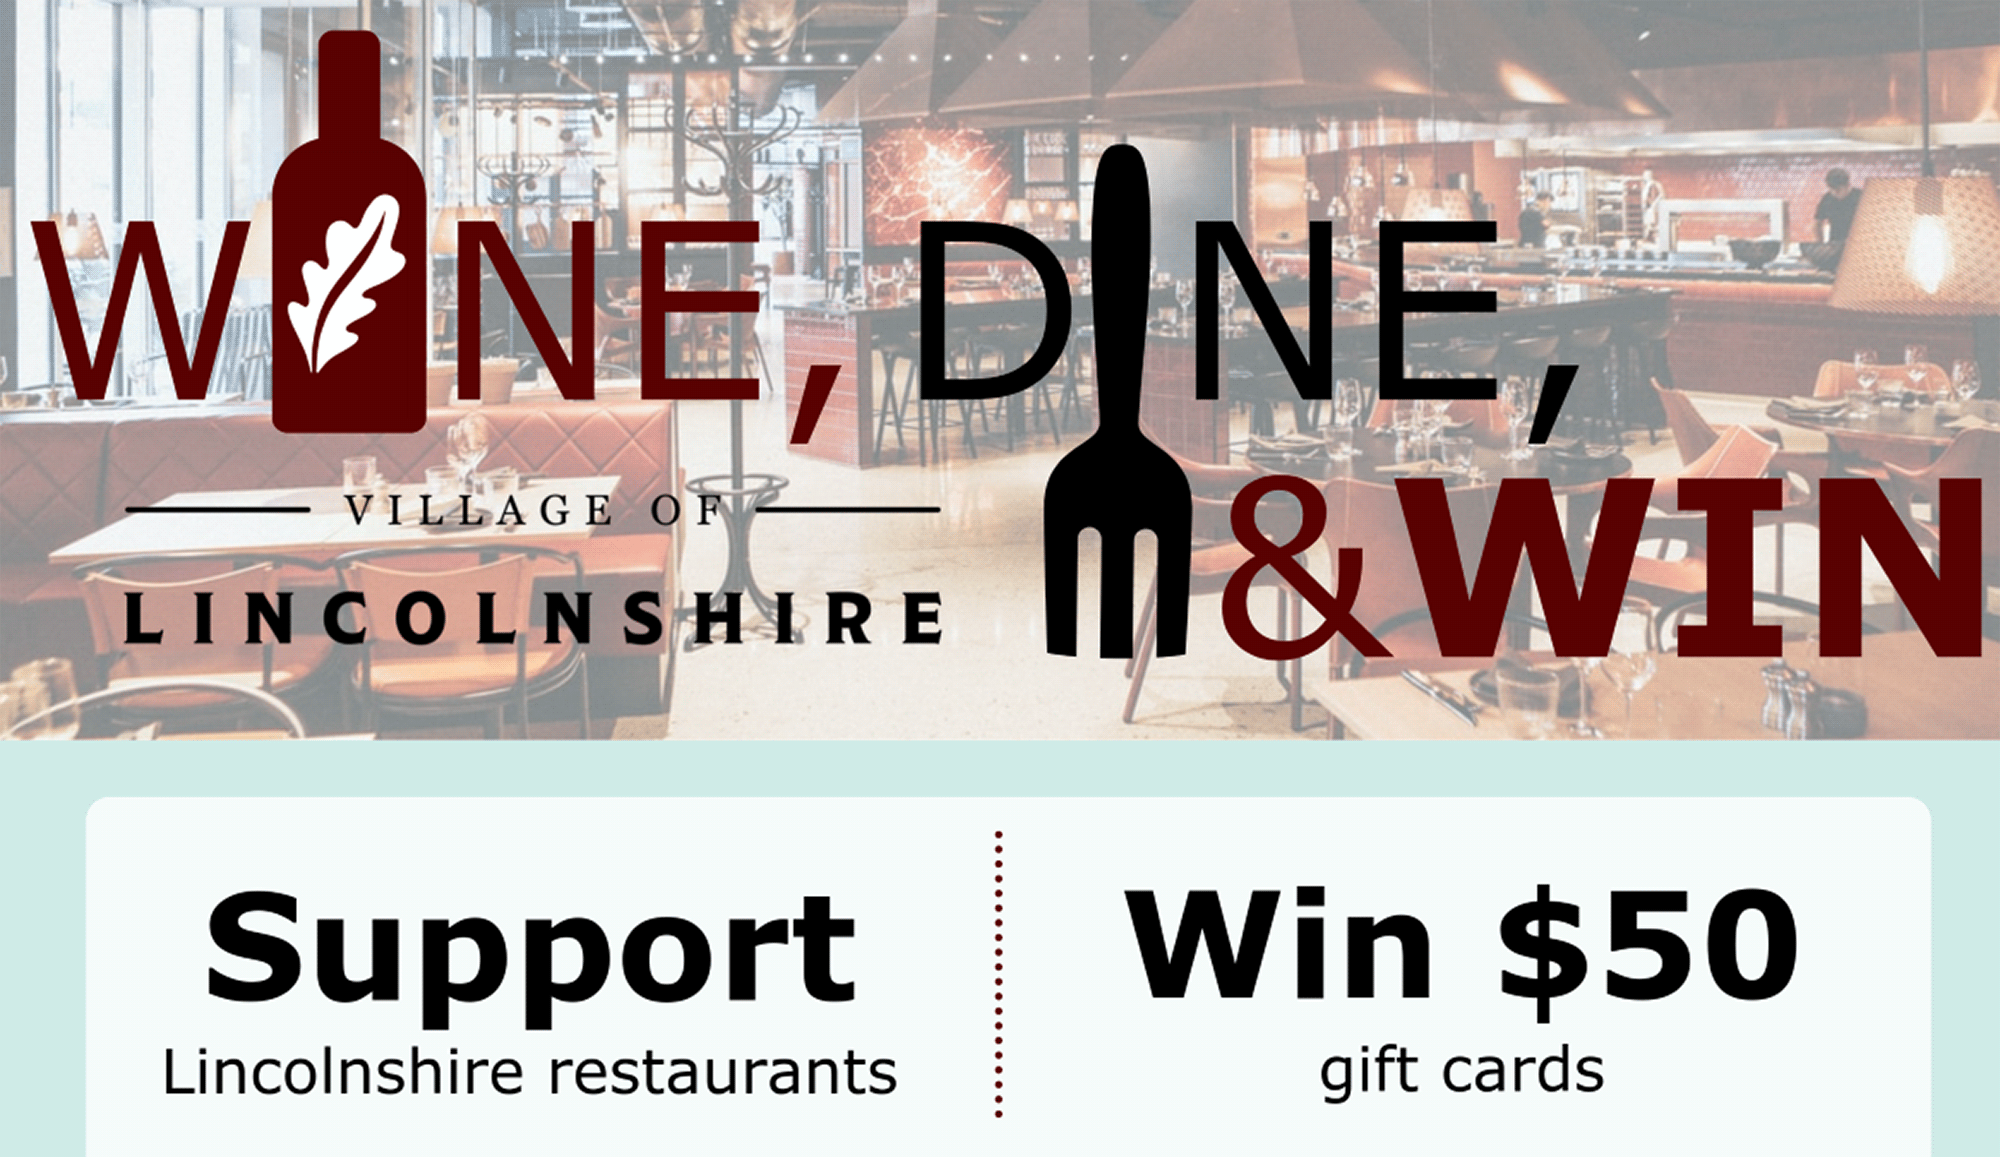 Wine, Dine and Win with The Village of Lincolnshire